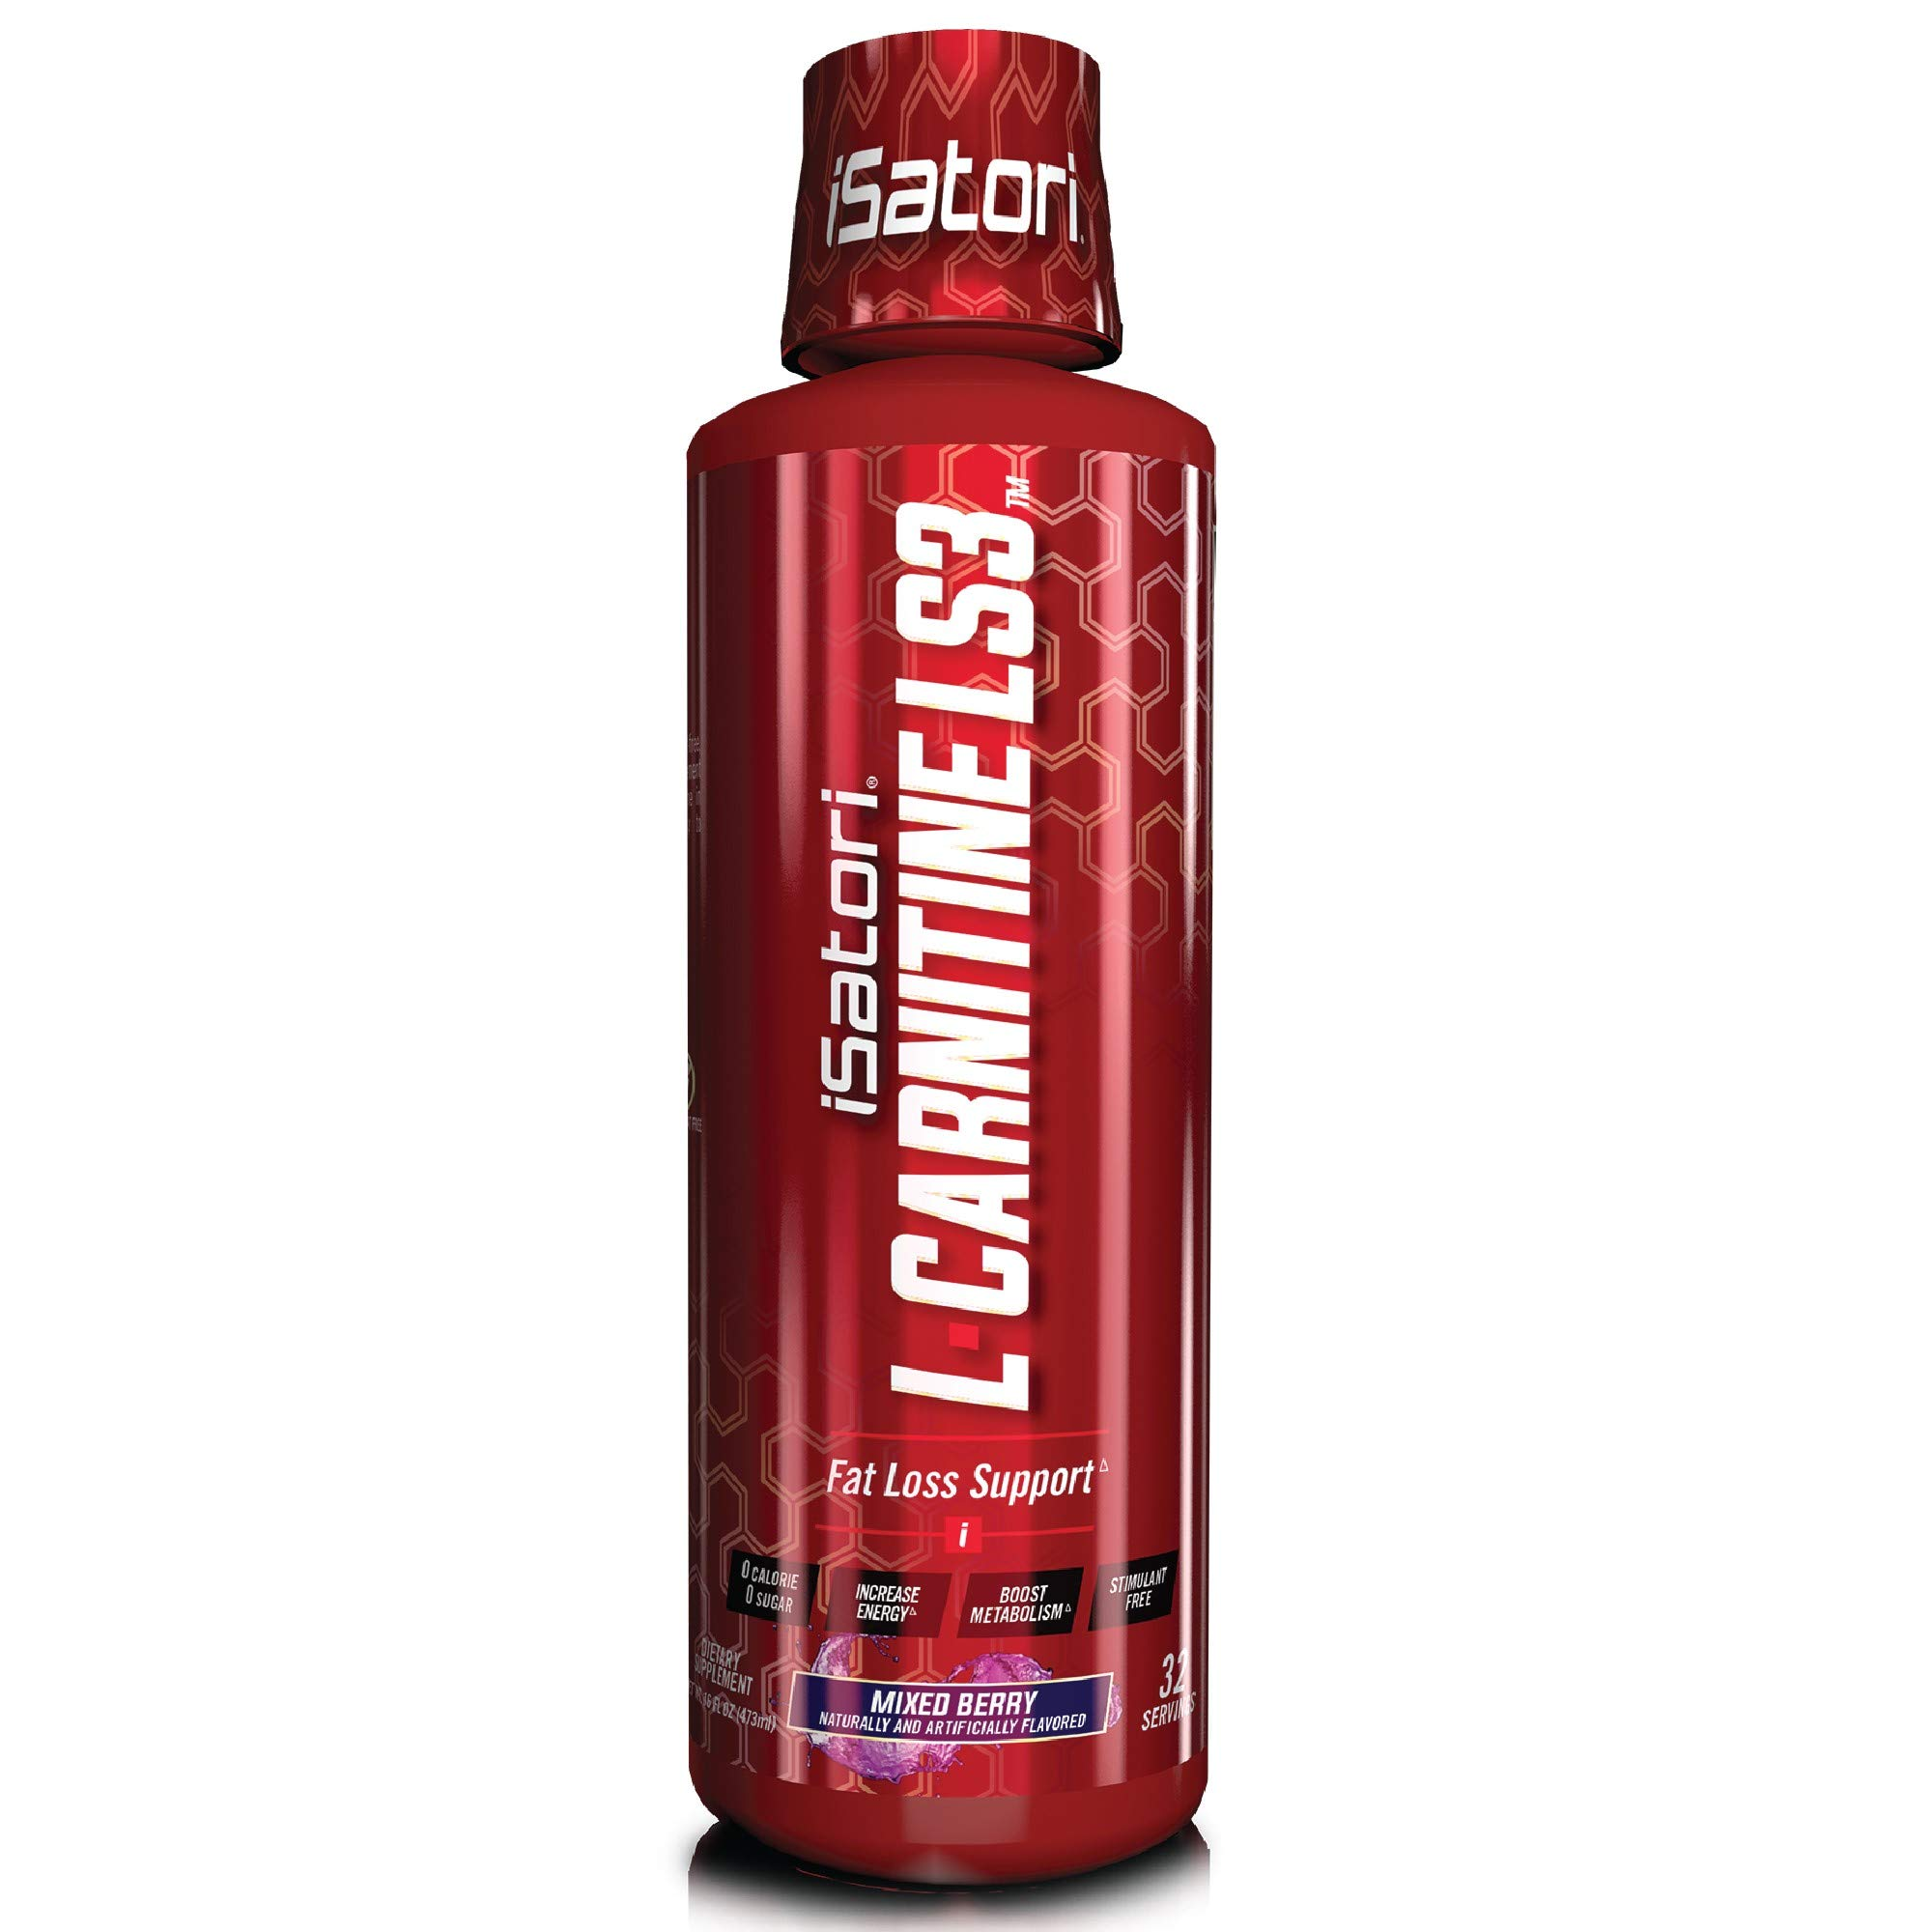 iSatori L-Carnitine LS3 Concentrated Liquid Fat Burner and Metabolism Activator - Fat Burner for Health and Fitness - -Stimulant Free Mixed Berry 1500mg - 32 Servings by iSatori